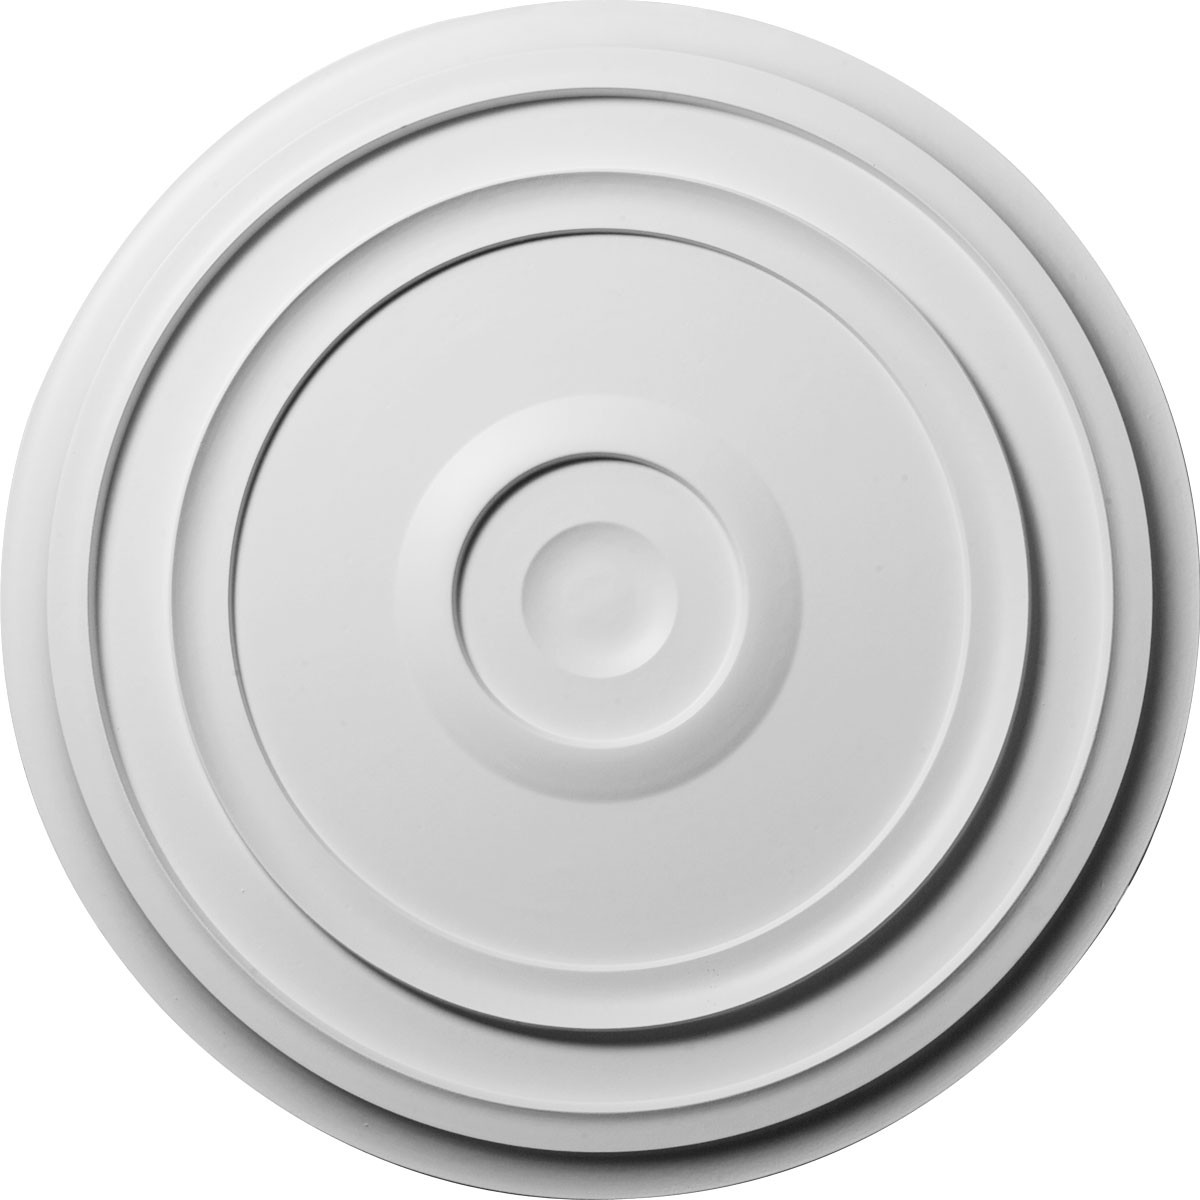 """EM-CM24RE - 24 3/8""""OD x 1 1/8""""P Traditional Reece Ceiling Medallion (Fits Canopies up to 5 7/8"""")"""